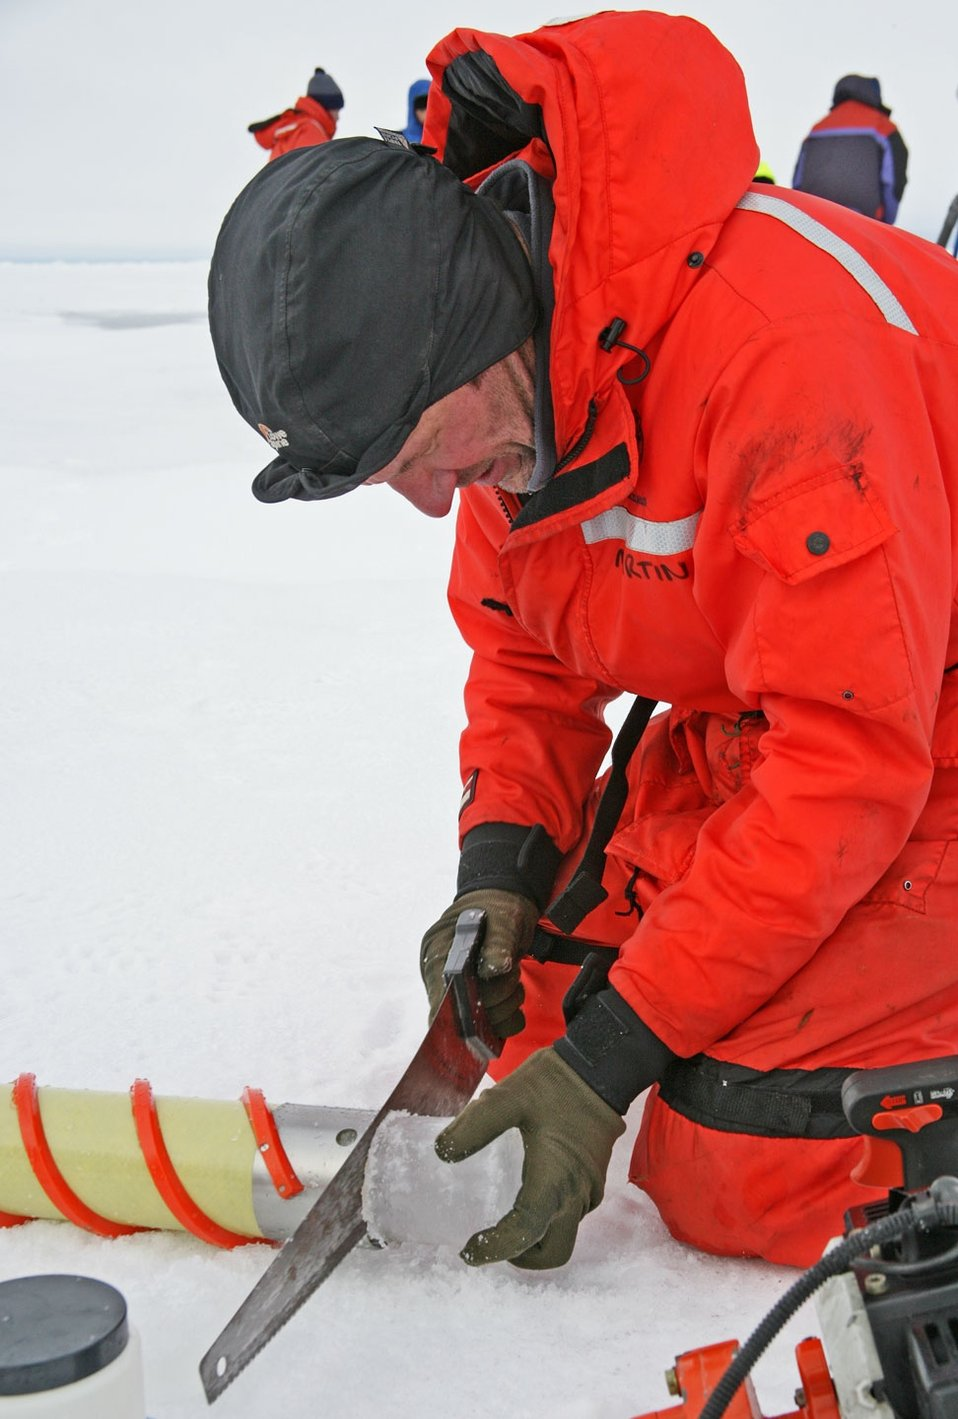 Sawing through ice core to obtain samples for analysis. See: http://www.naturalsciences.org/education/arctic/